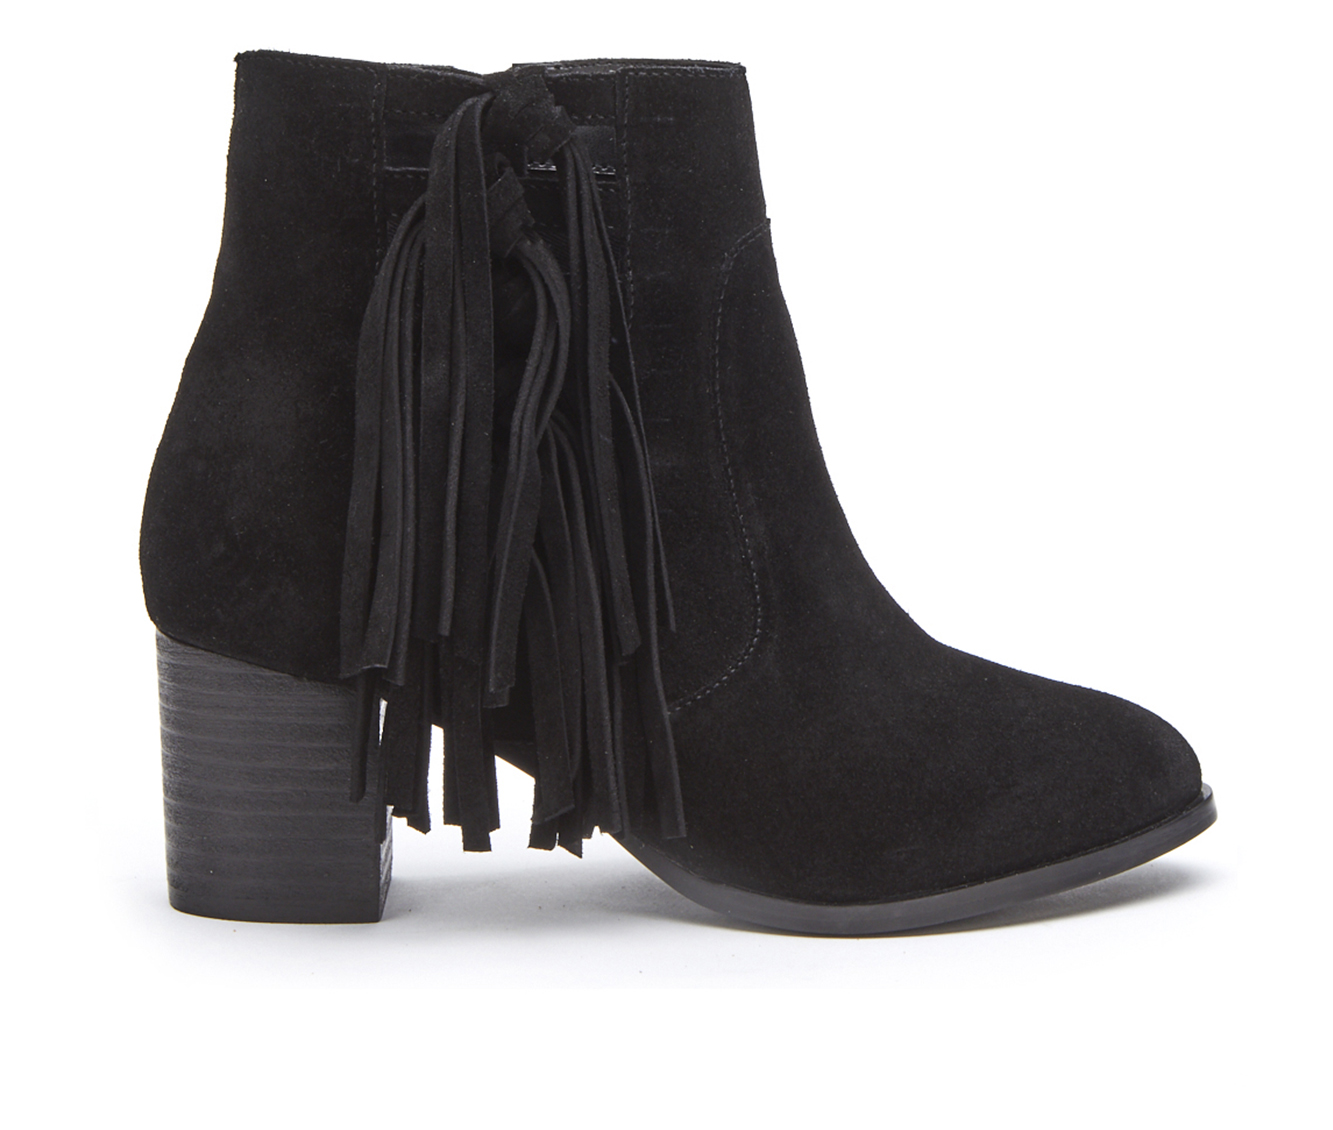 Coconuts Stroll Through Women's Boot (Black Suede)